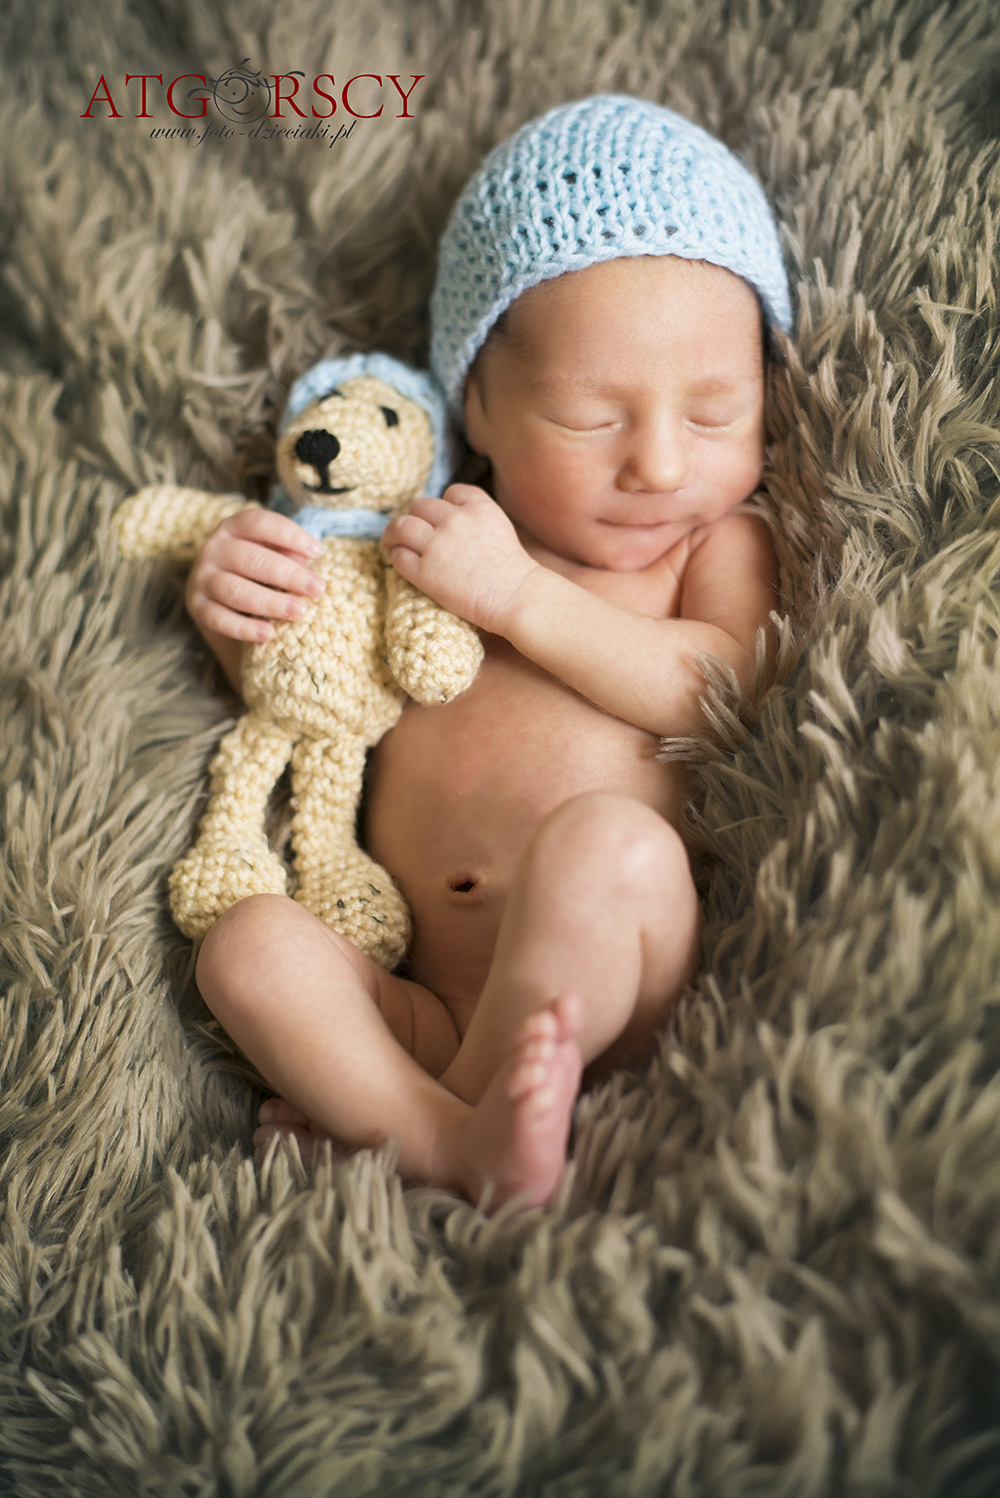 newborn_photography_1_20150330_1559845420